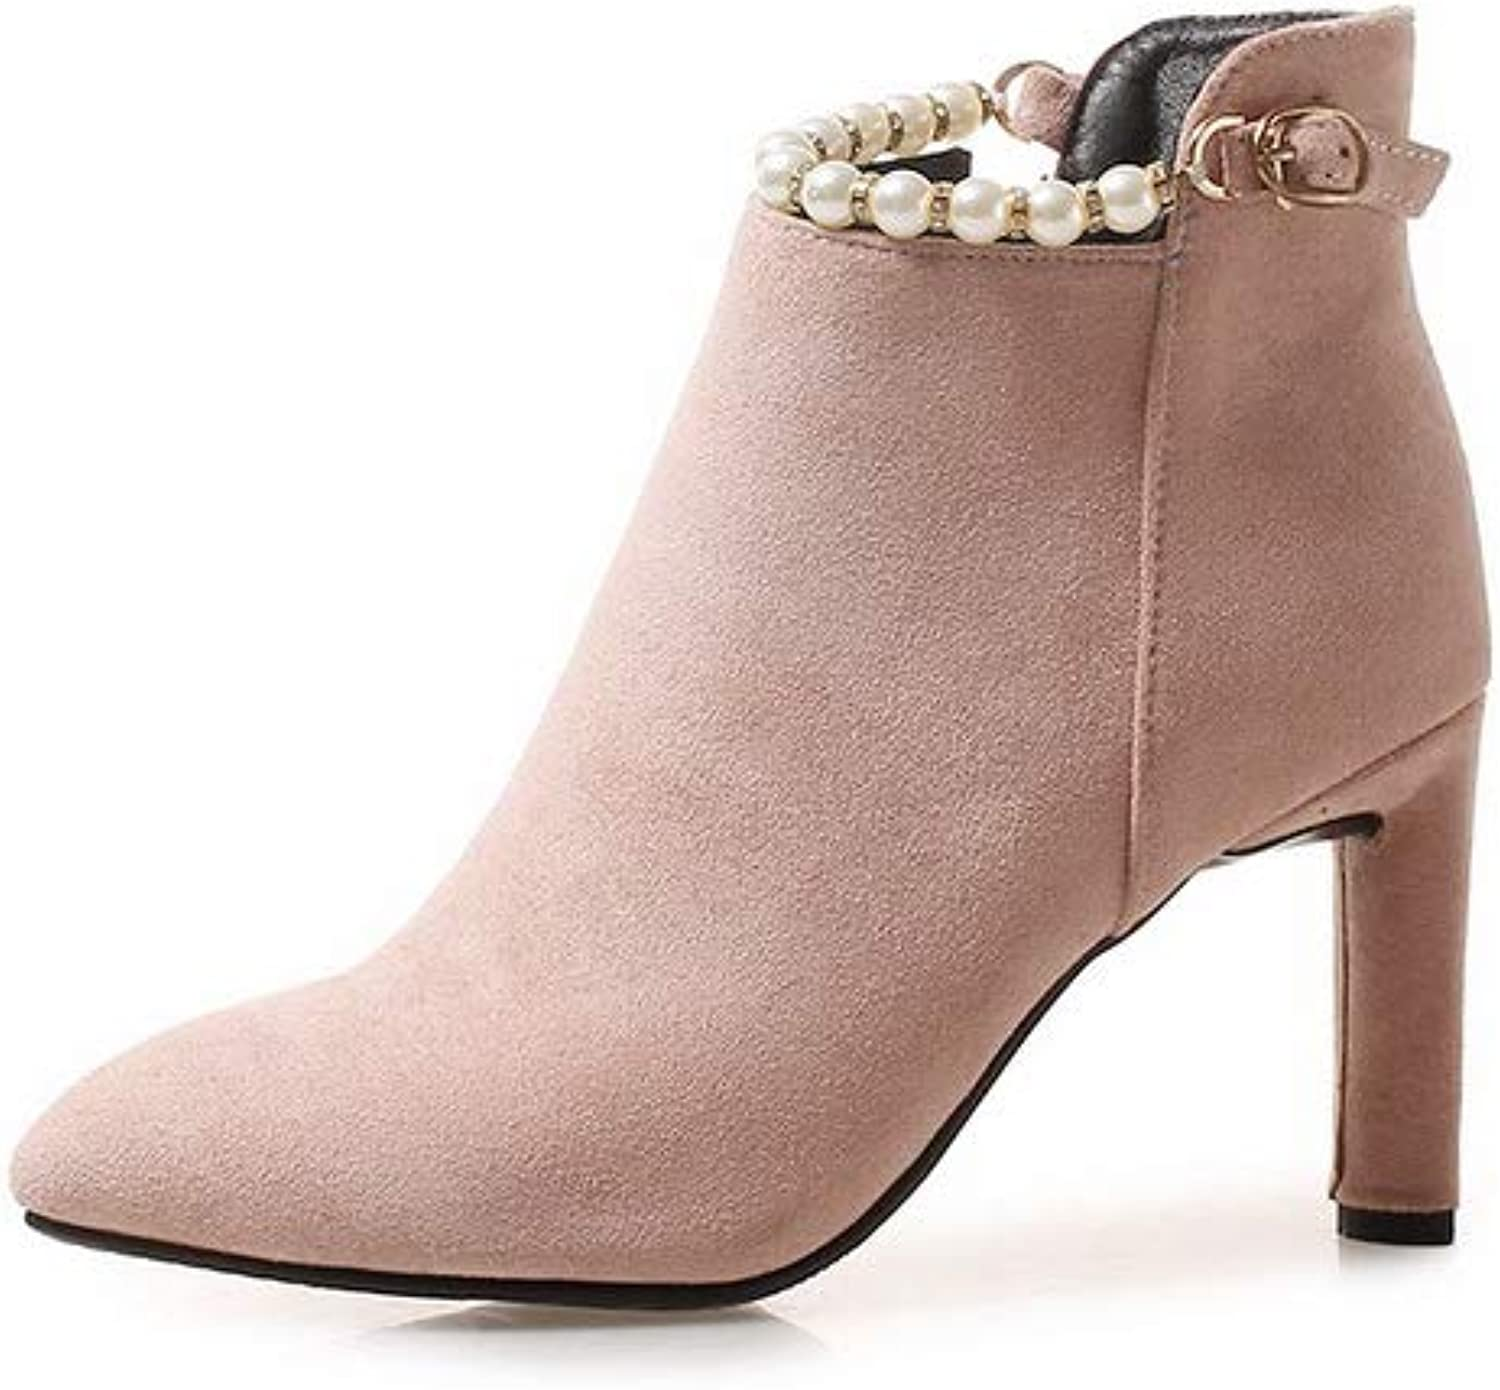 AN Womens Chunky Heels Pointed-Toe Bead Imitated Suede Boots DKU02411